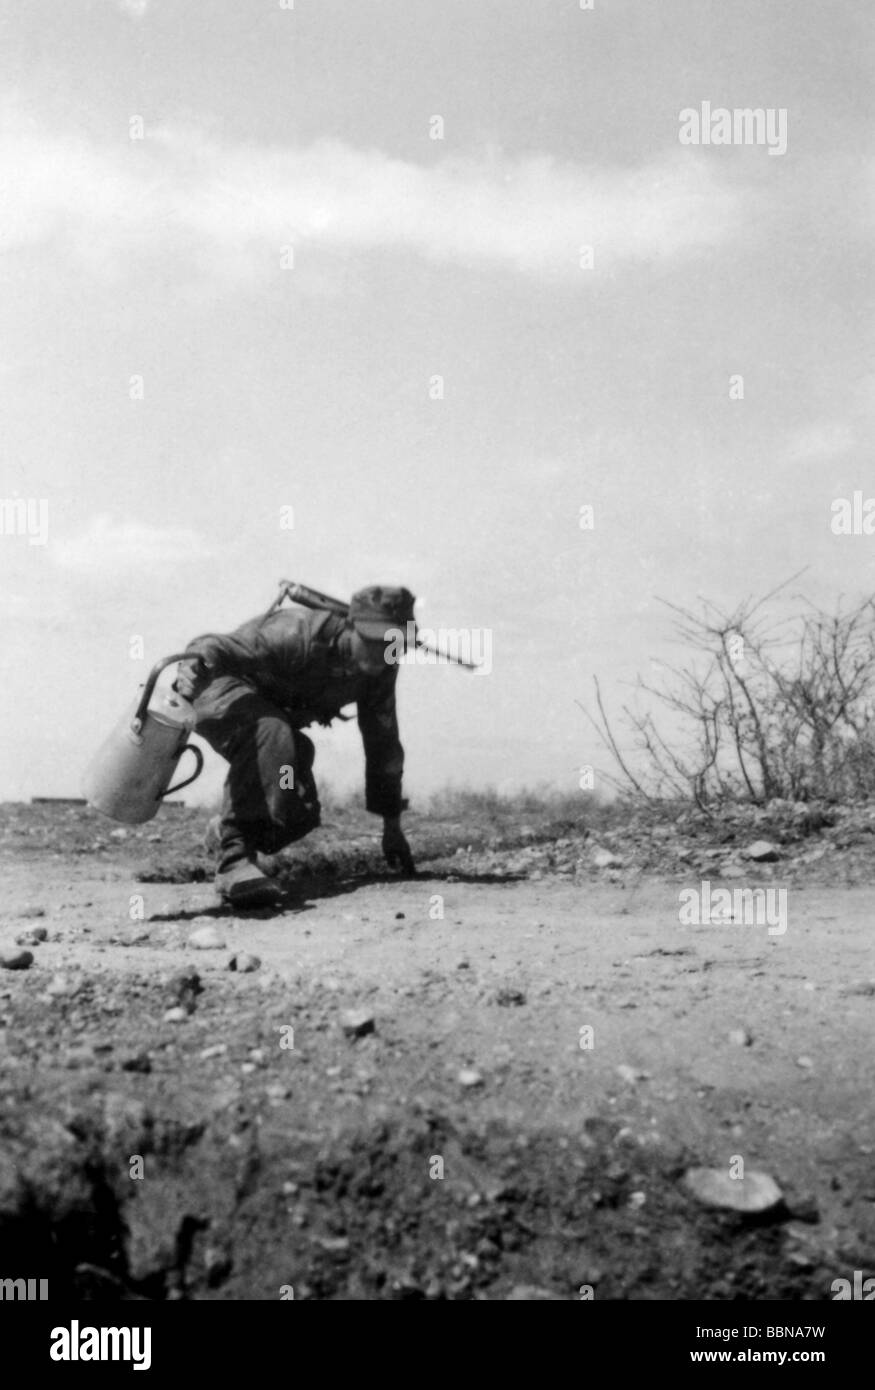 events, Second World War / WWII, Russia 1944 / 1945, Crimea, Sevastopol, German soldier bringing food to his comrades - Stock Image